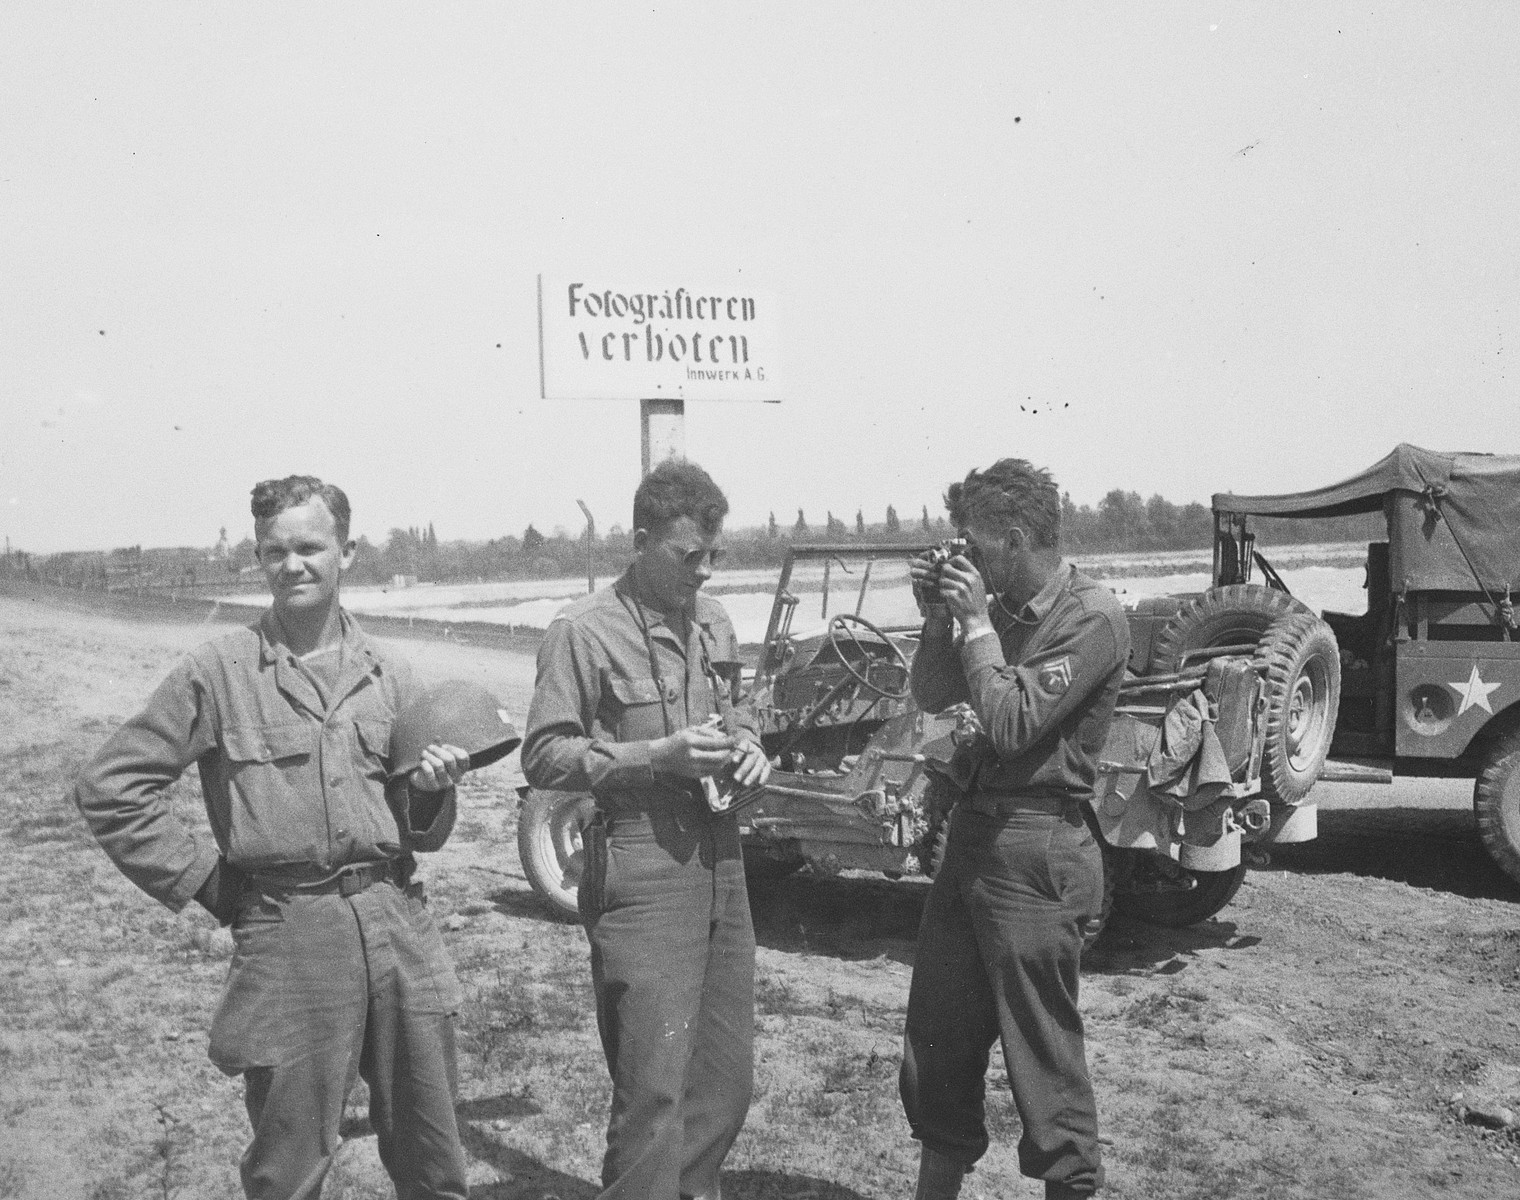 """Three U.S. combat photographers from the 167th Signal Photo Company stop to take pictures in front of a German sign that reads, """"Photography is prohibited.""""  Pictured on the left is Walt MacDonald."""